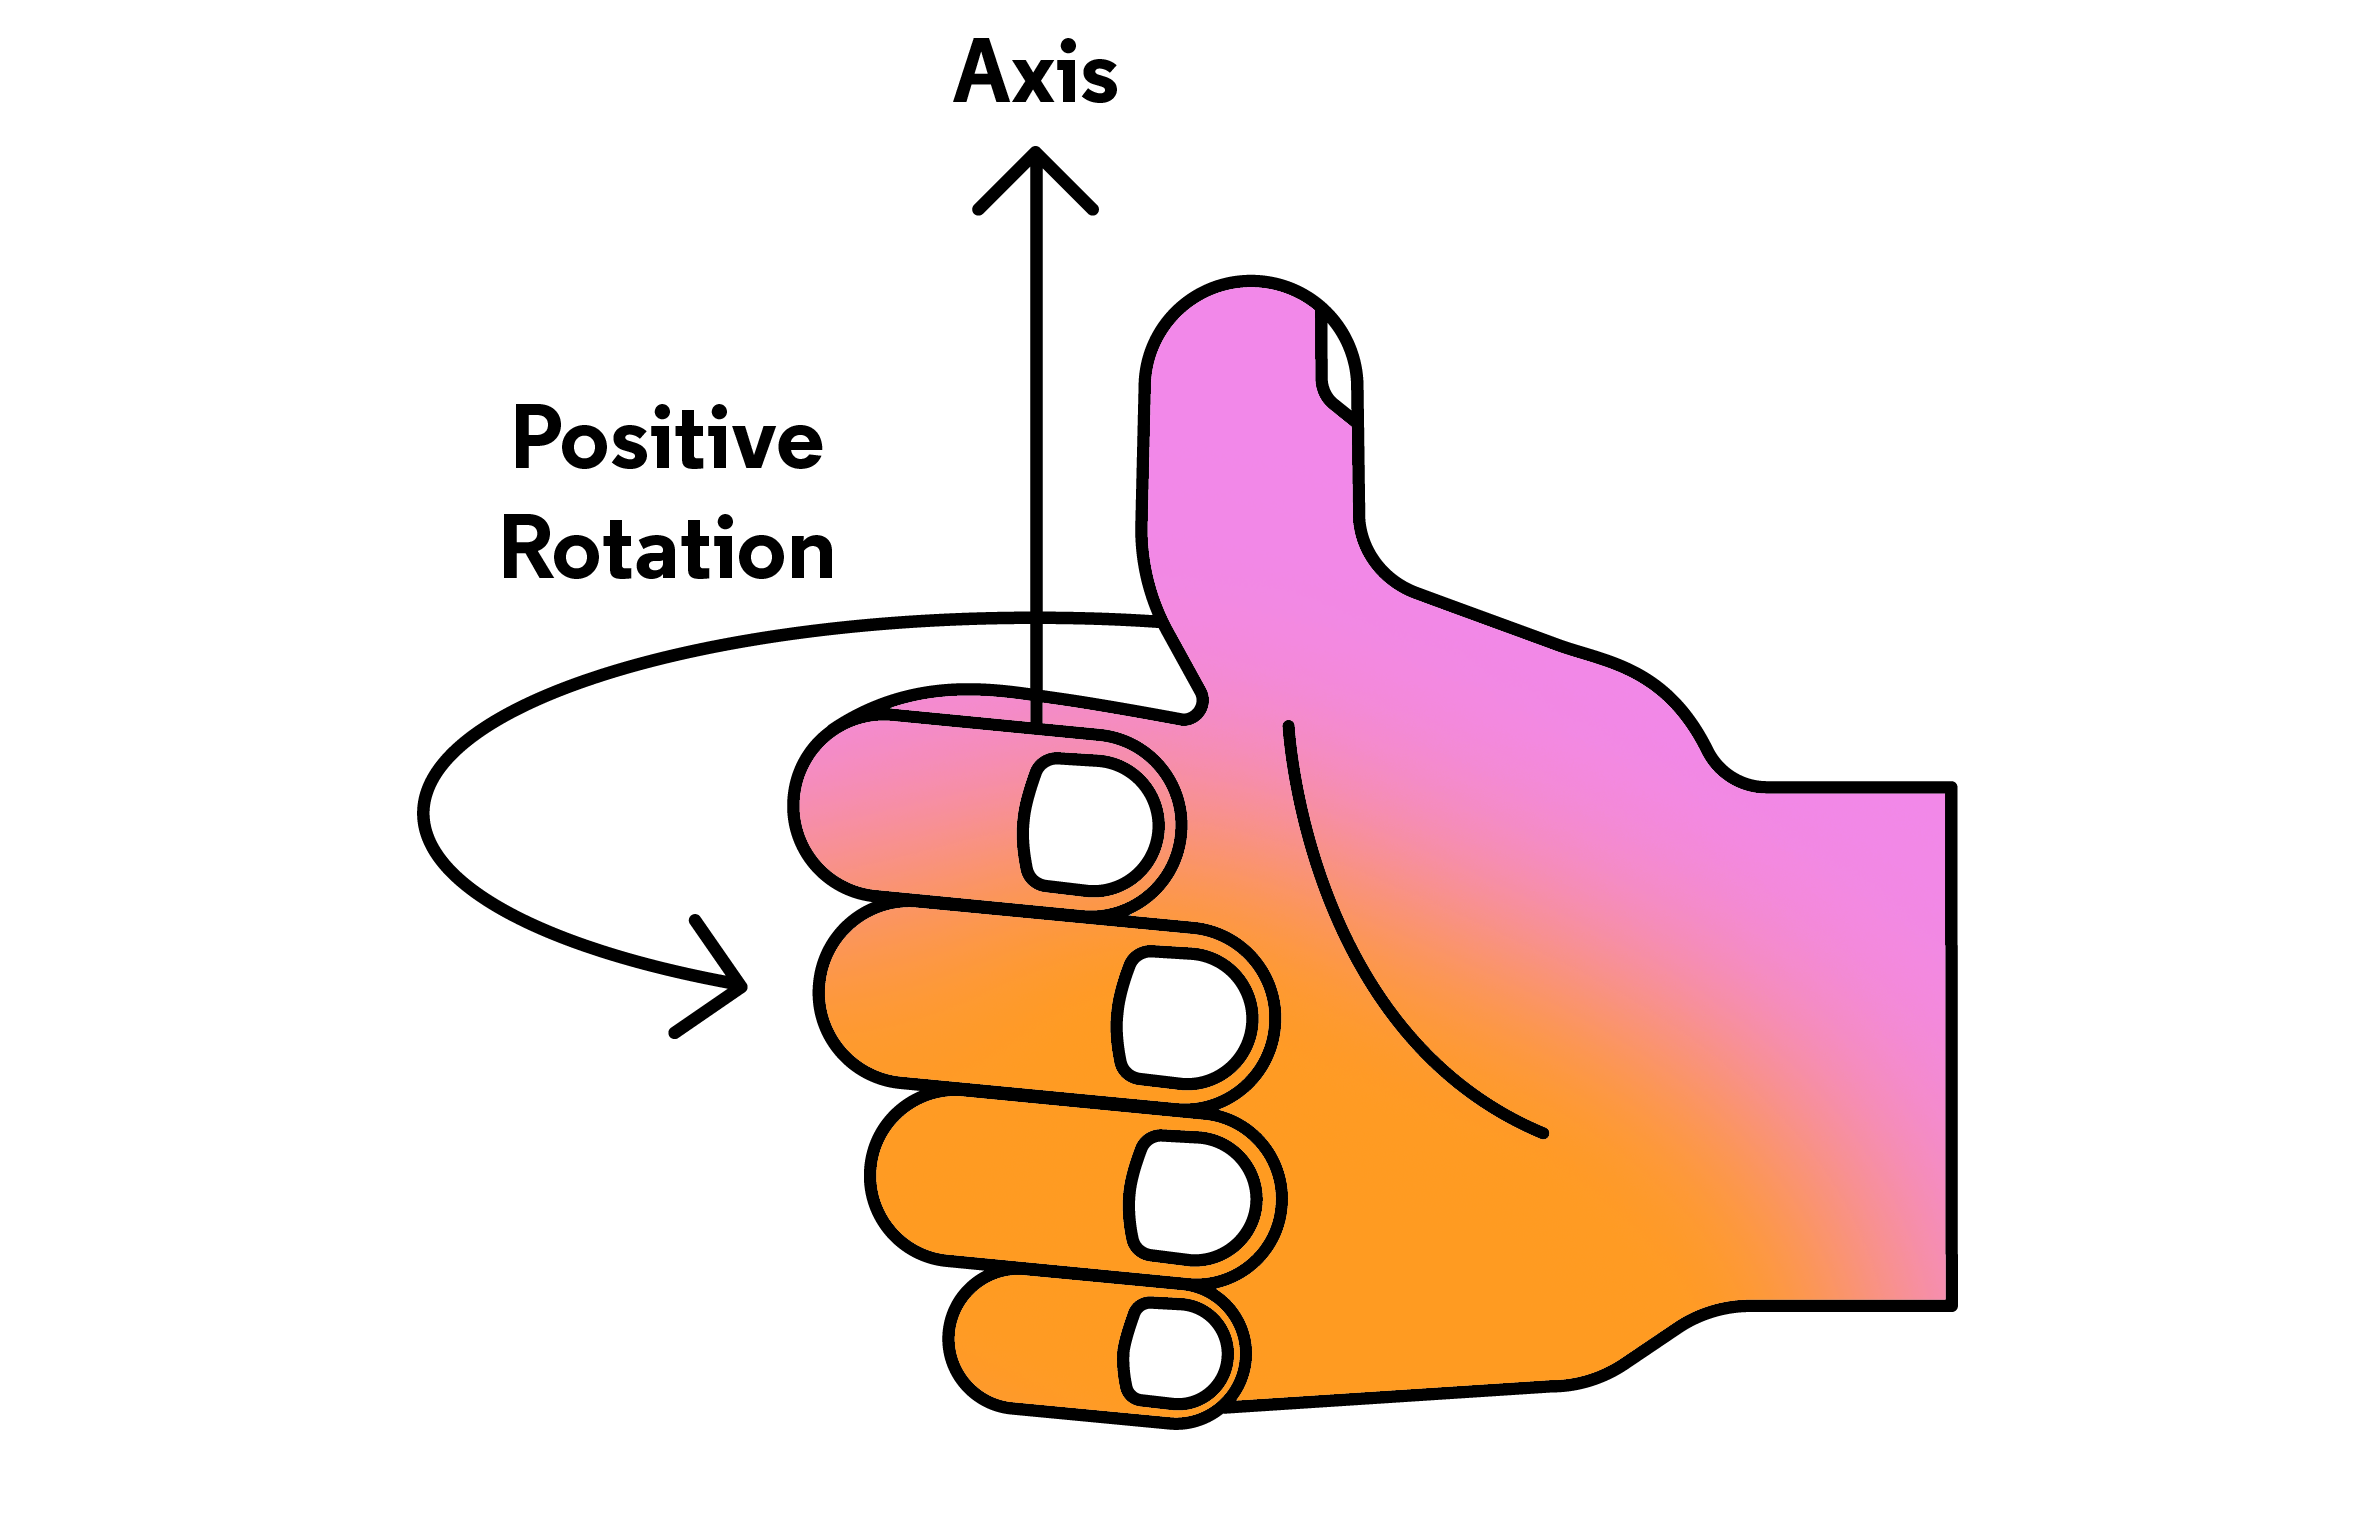 Rotation right-hand rule